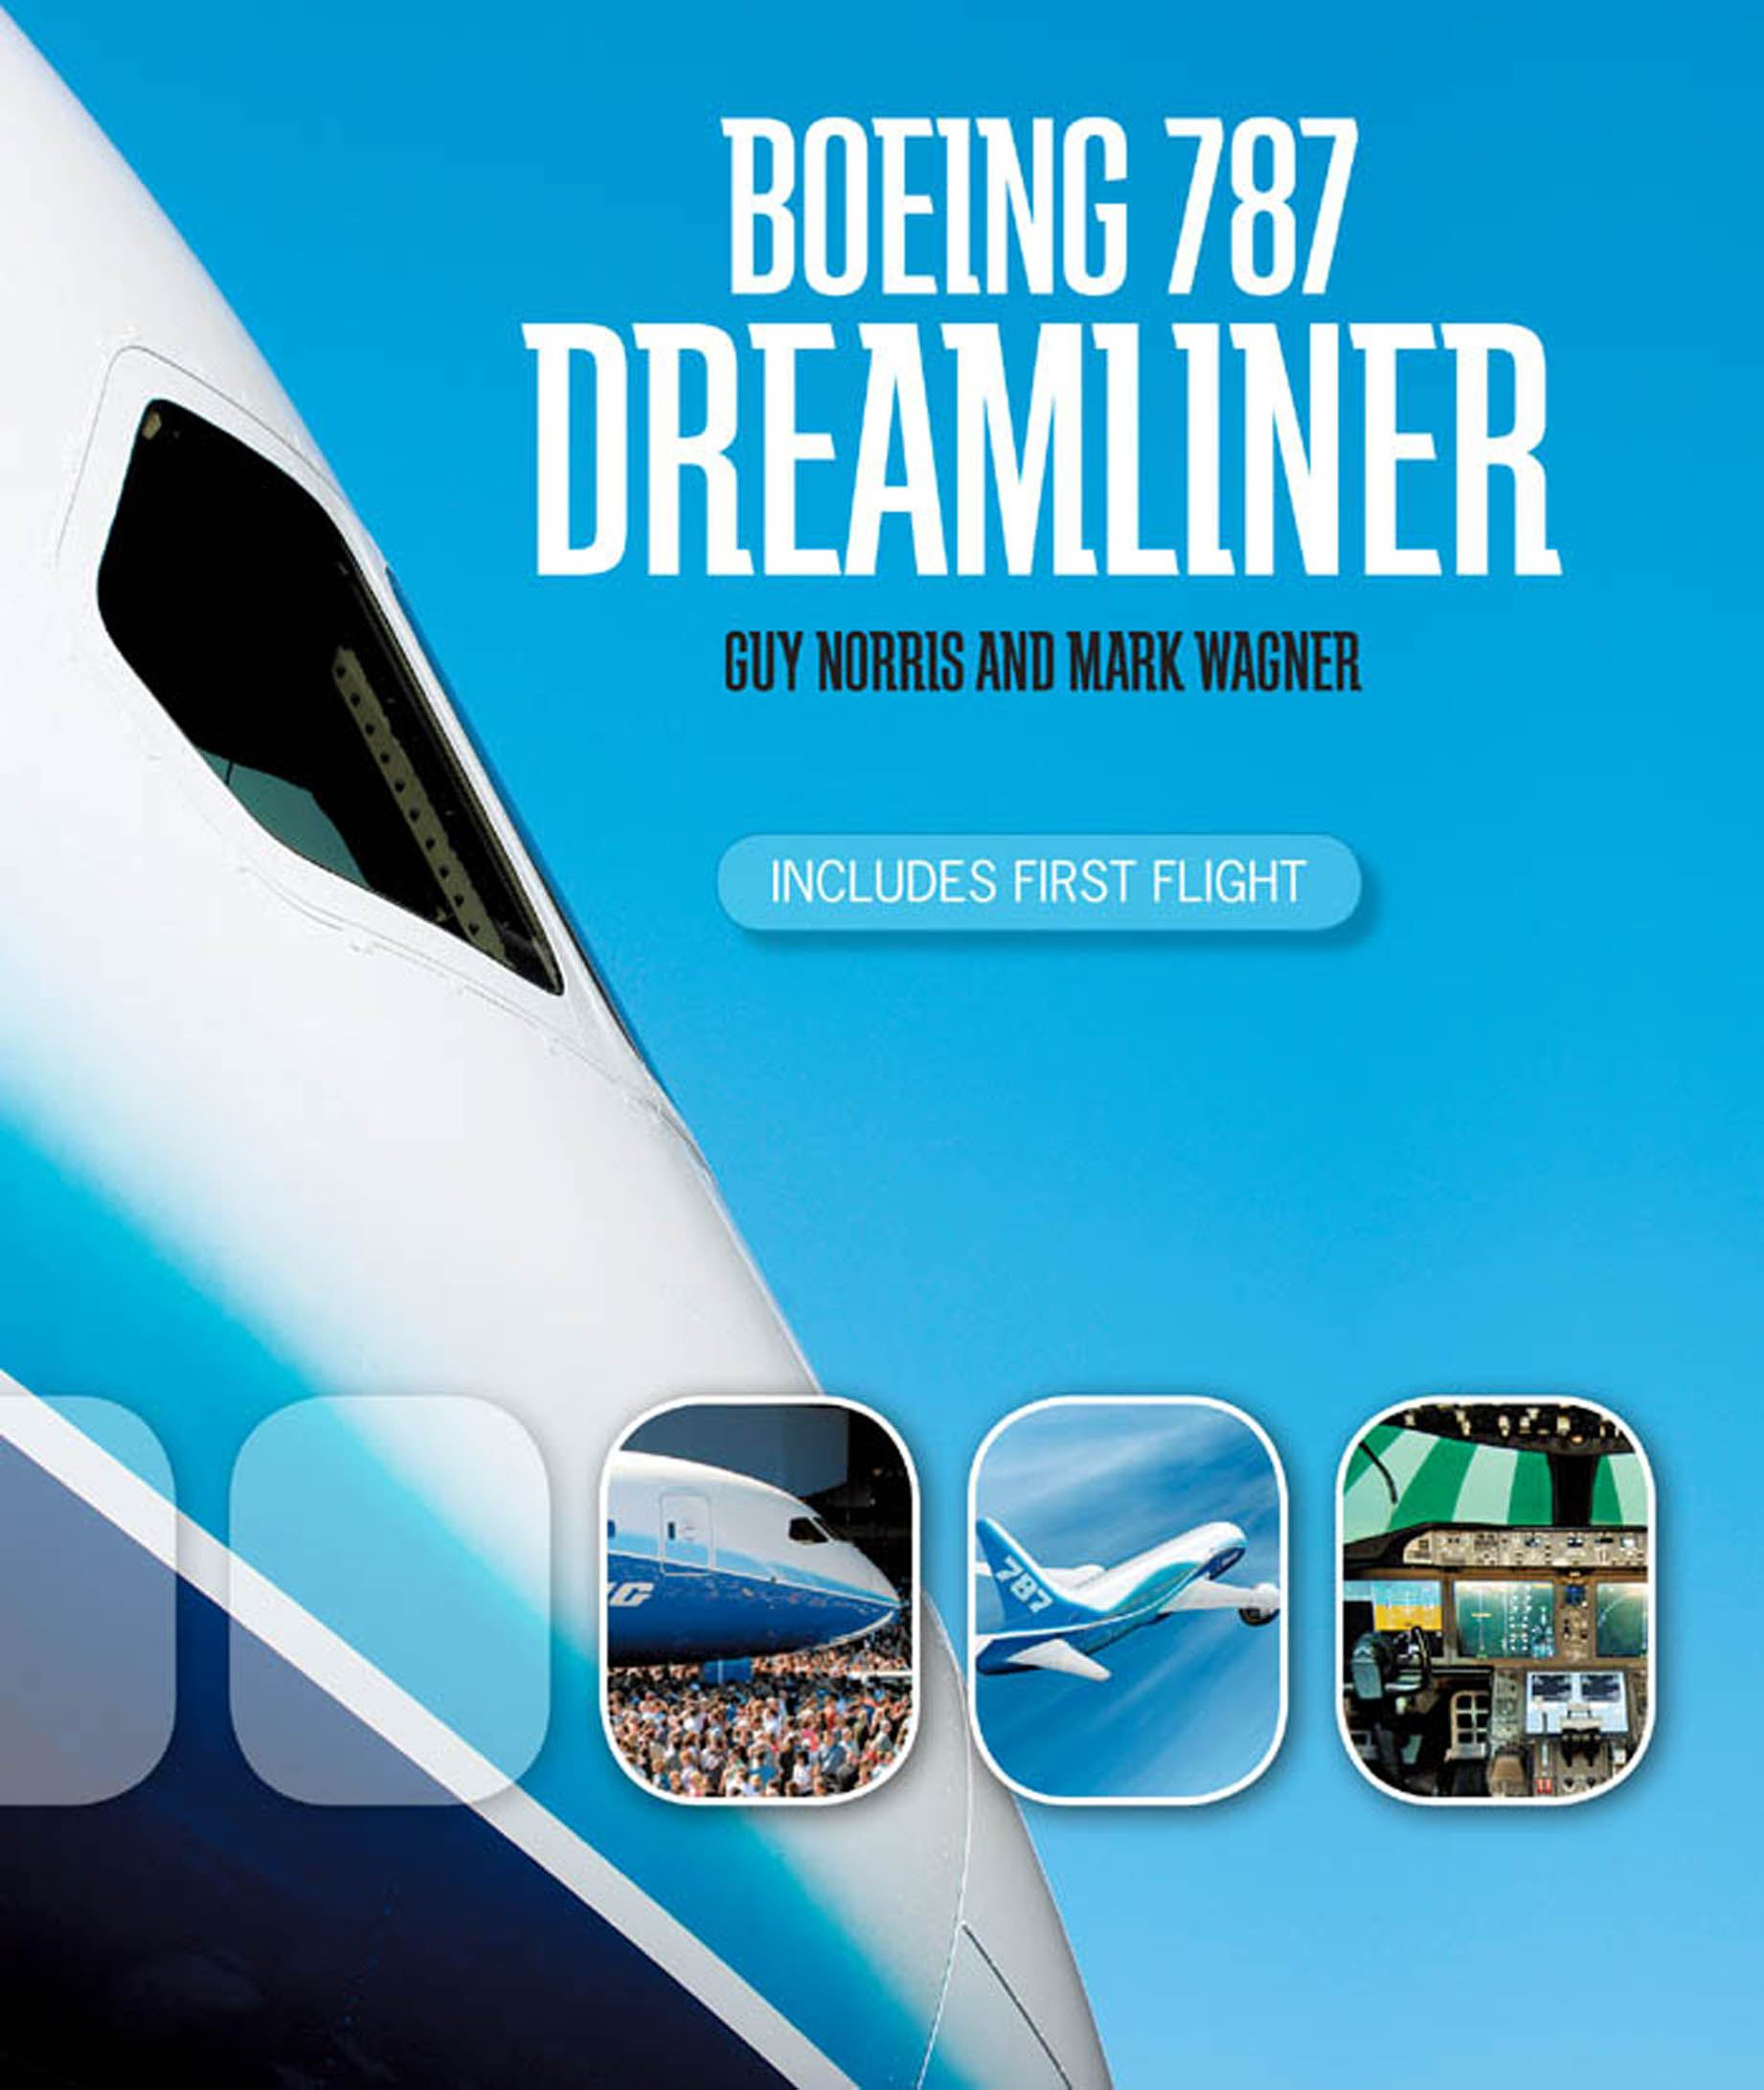 Boeing 787 Dreamliner By: Mark Wagner,Guy Norris